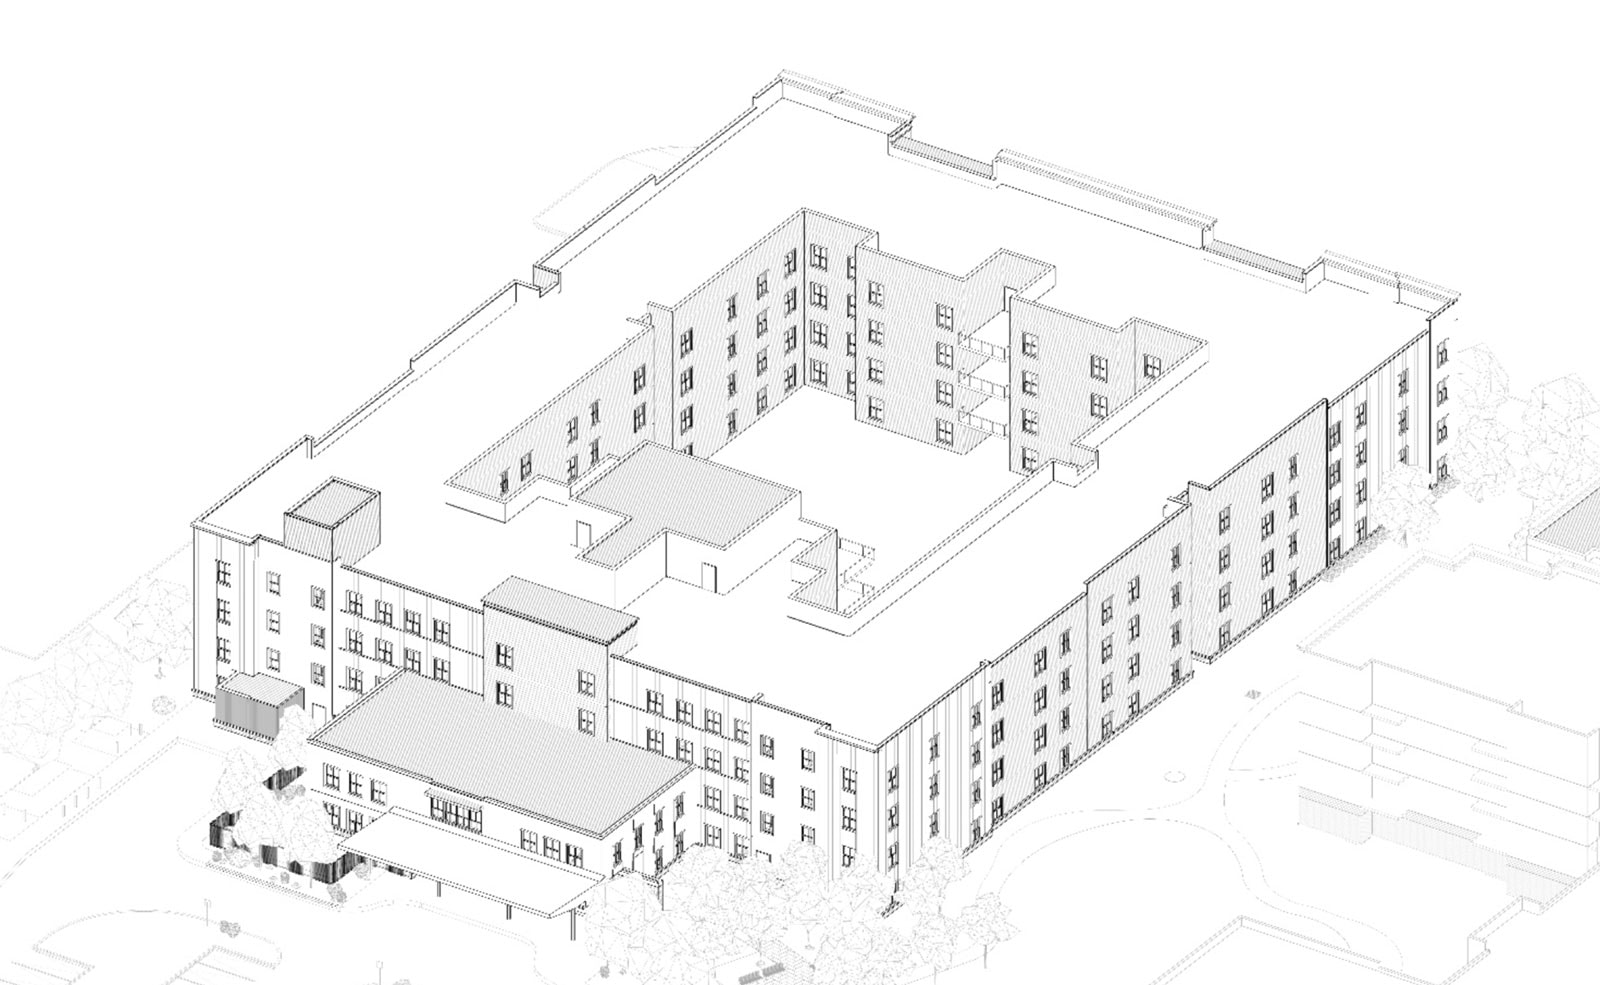 Proposed Extendicare LTC at 2510 Wellings Private